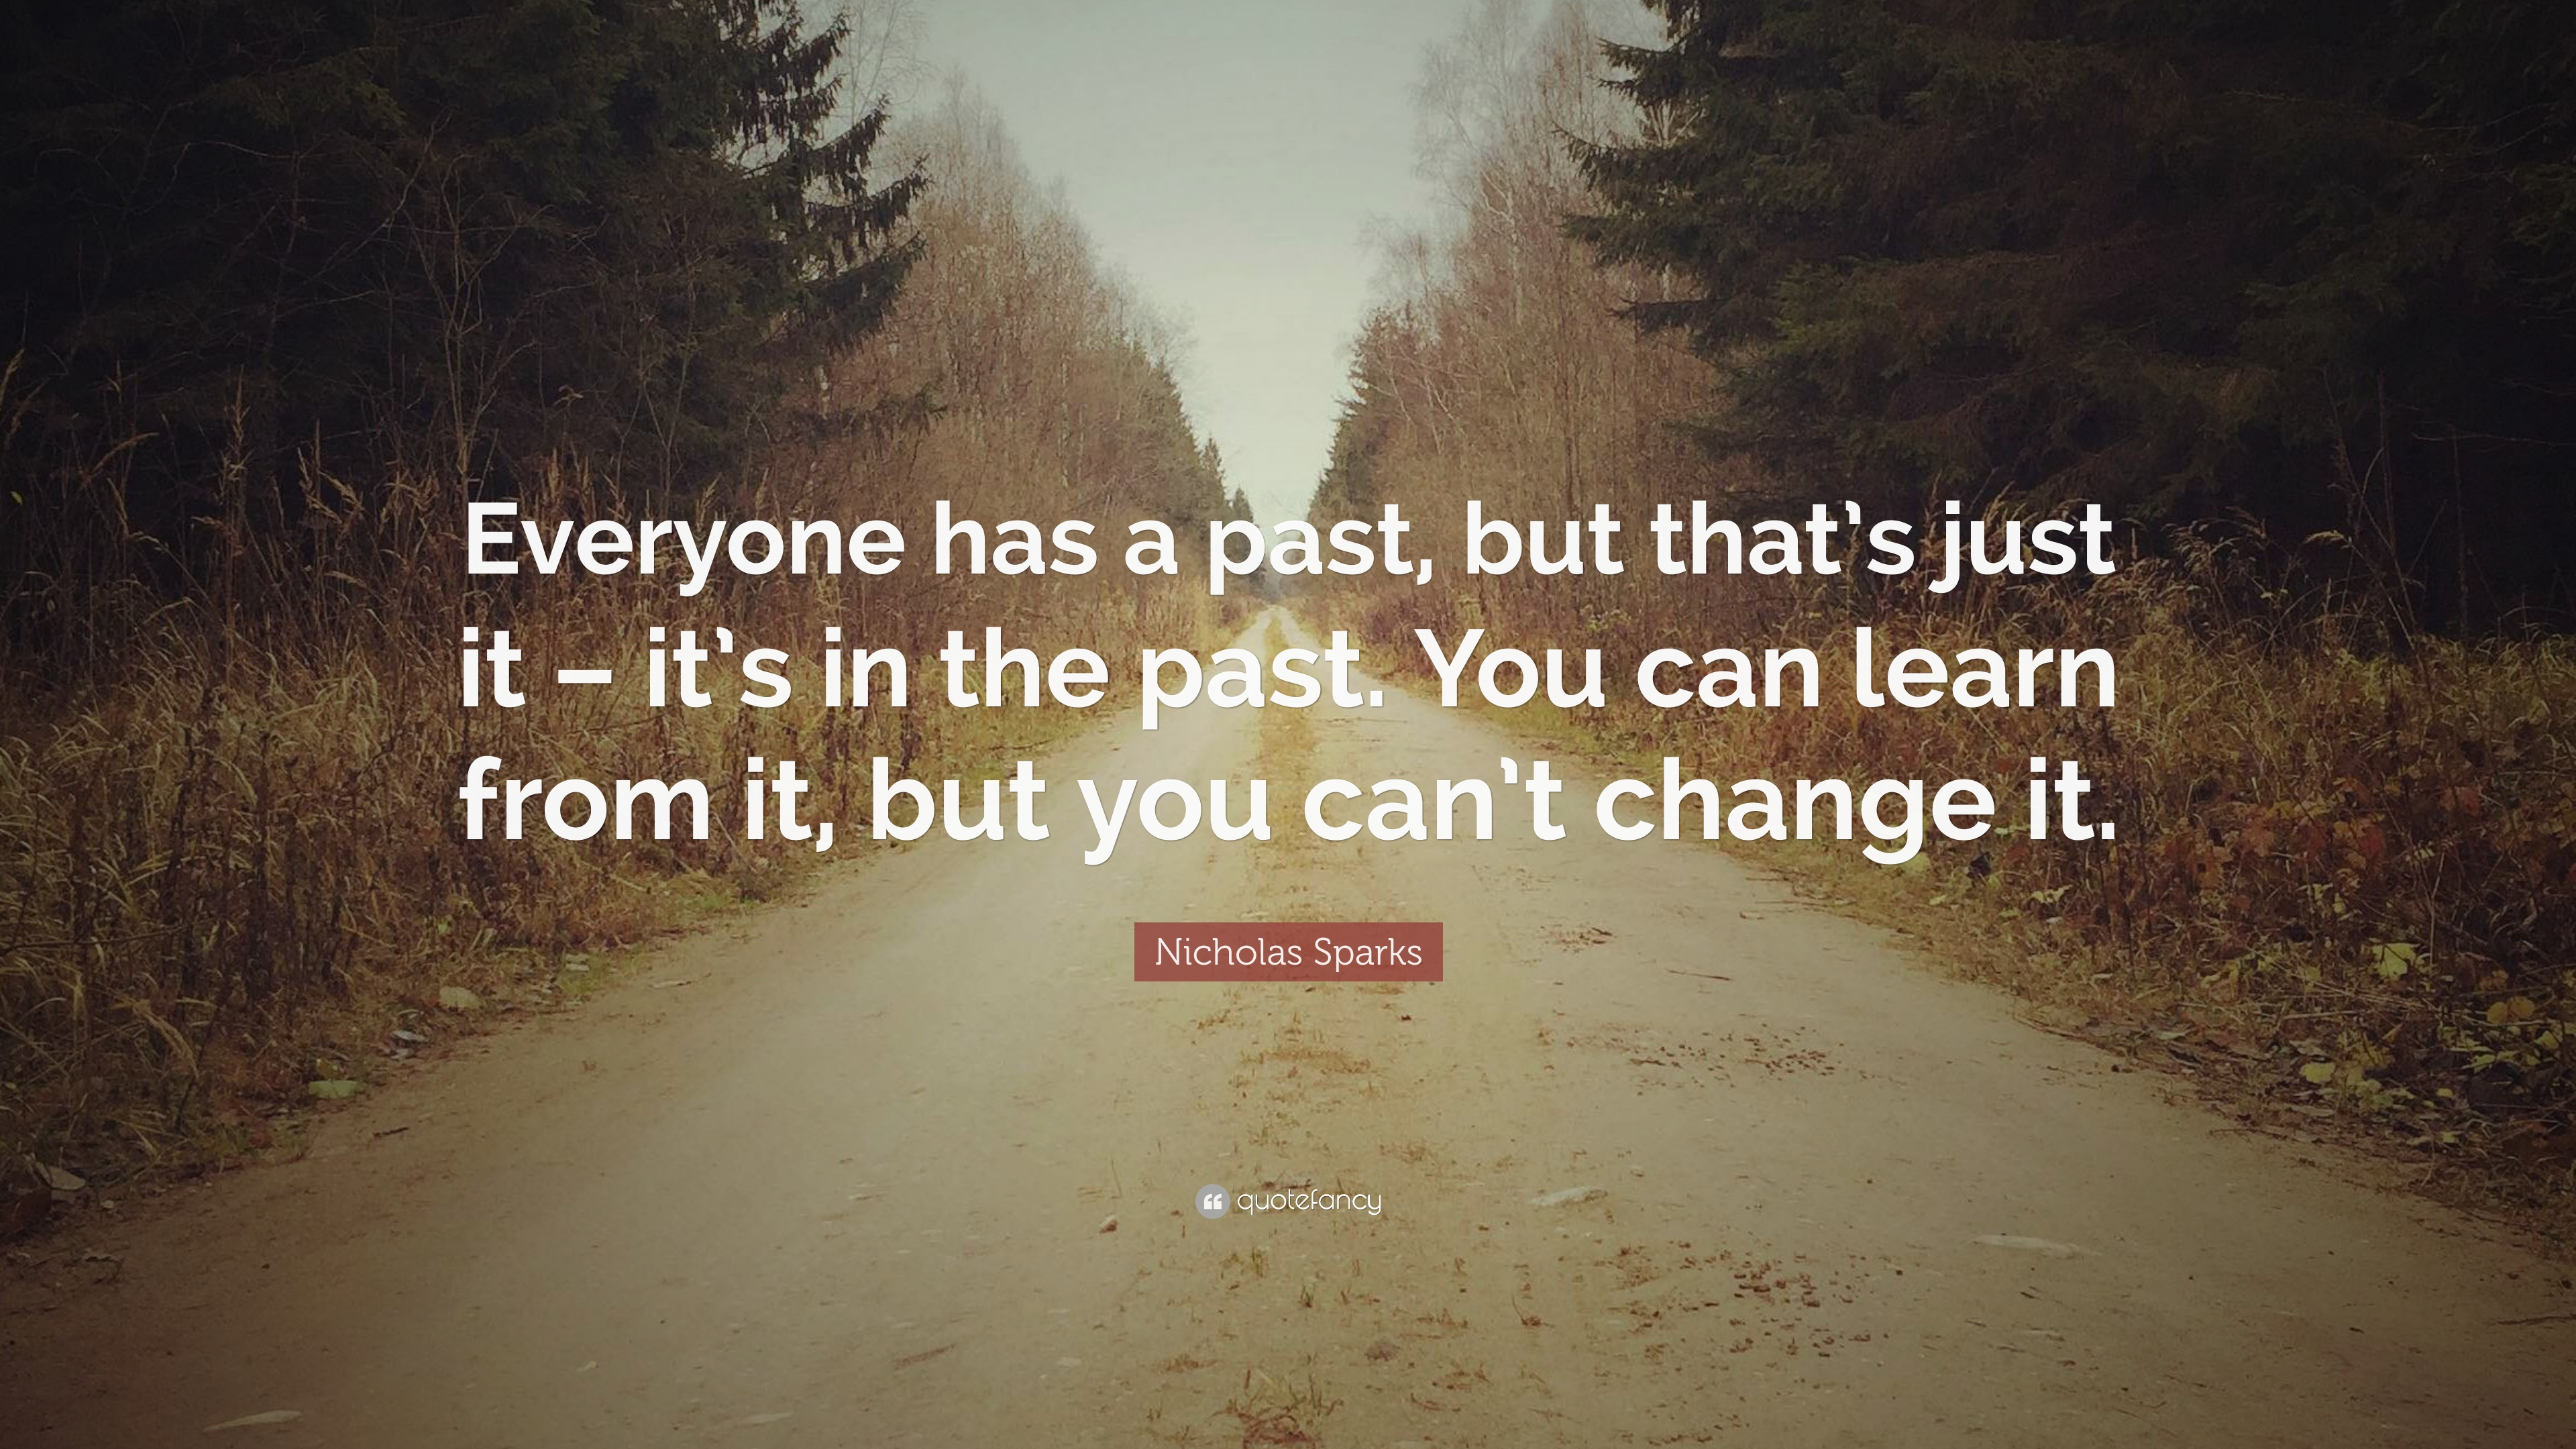 Nicholas Sparks Quote Everyone Has A Past But Thats Just It